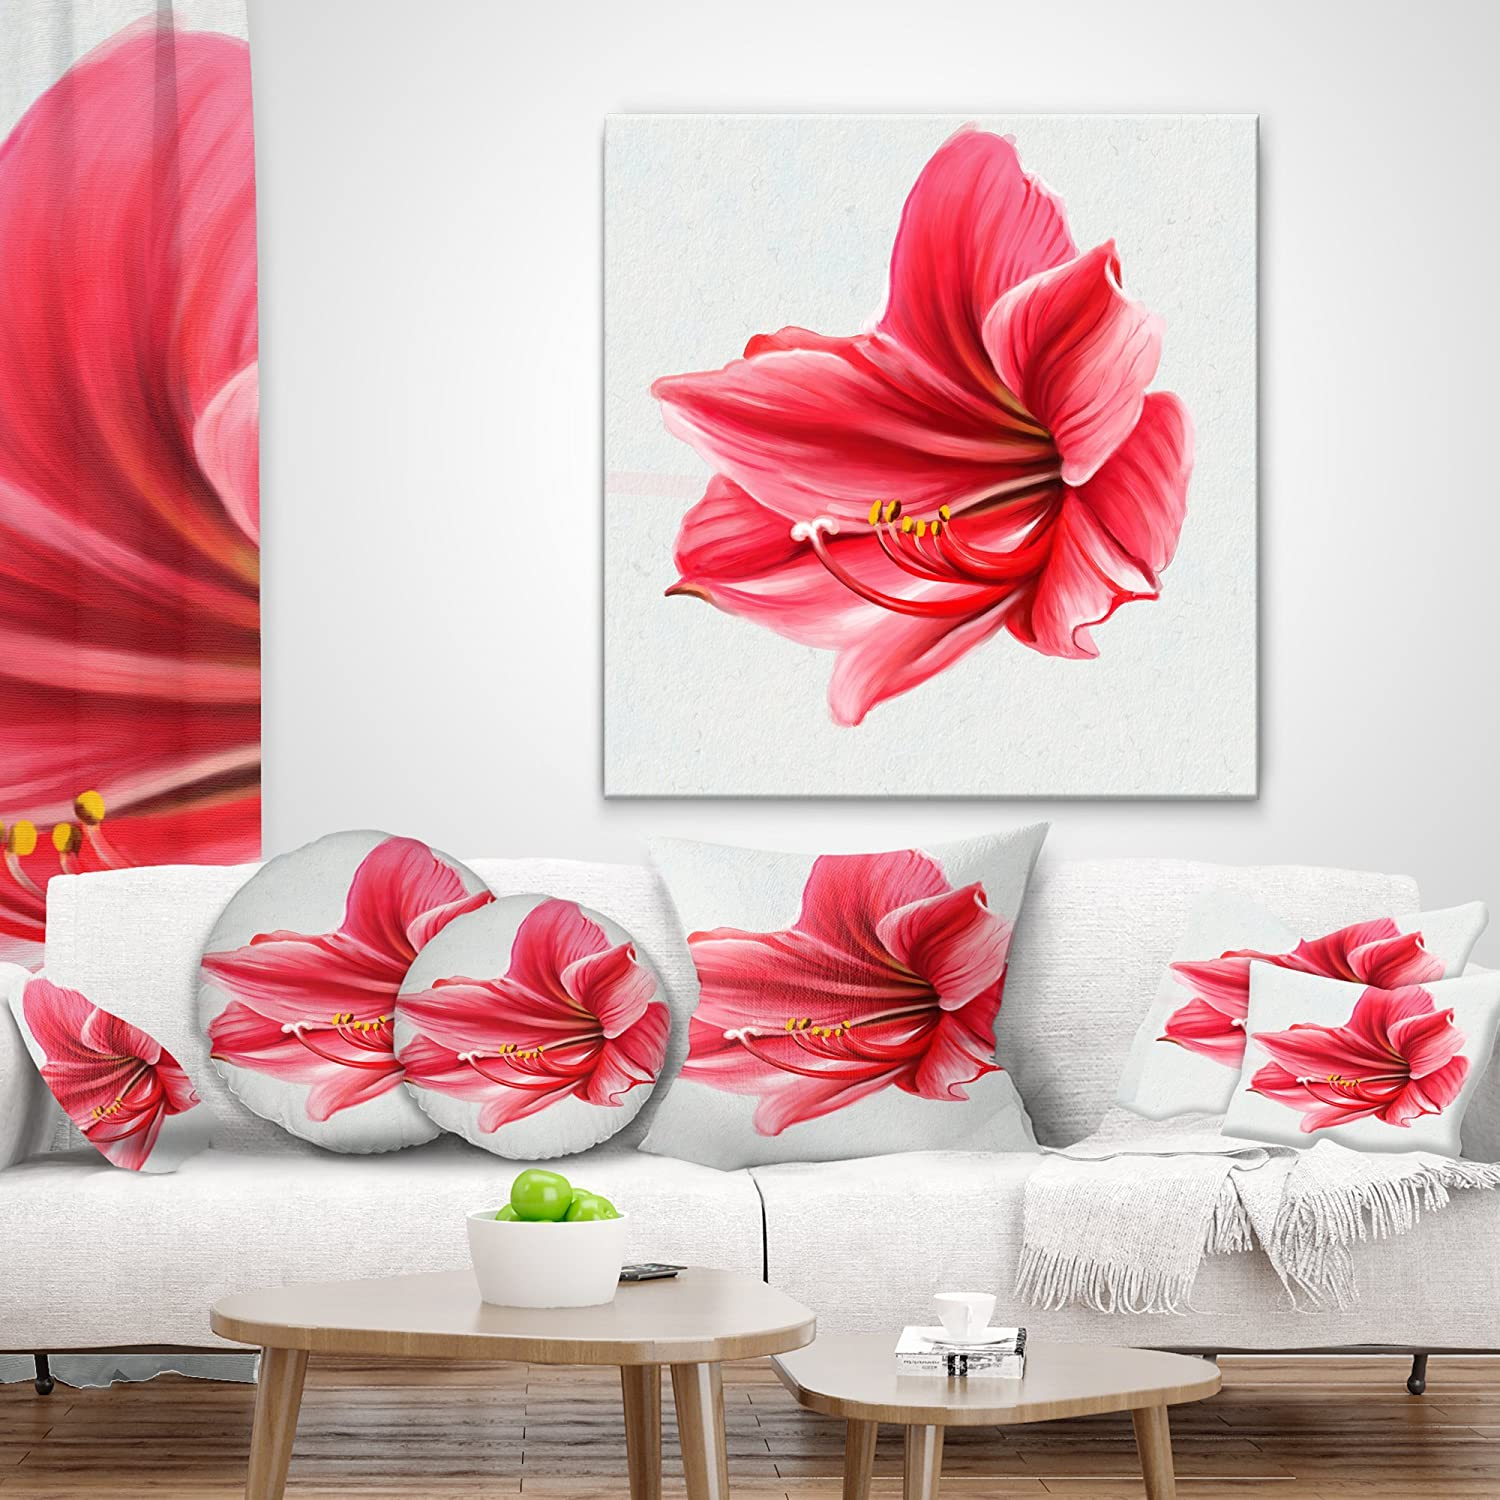 X 16 In Designart Cu13581 16 16 Big Red Flower Sketch On White Floral Cushion Cover